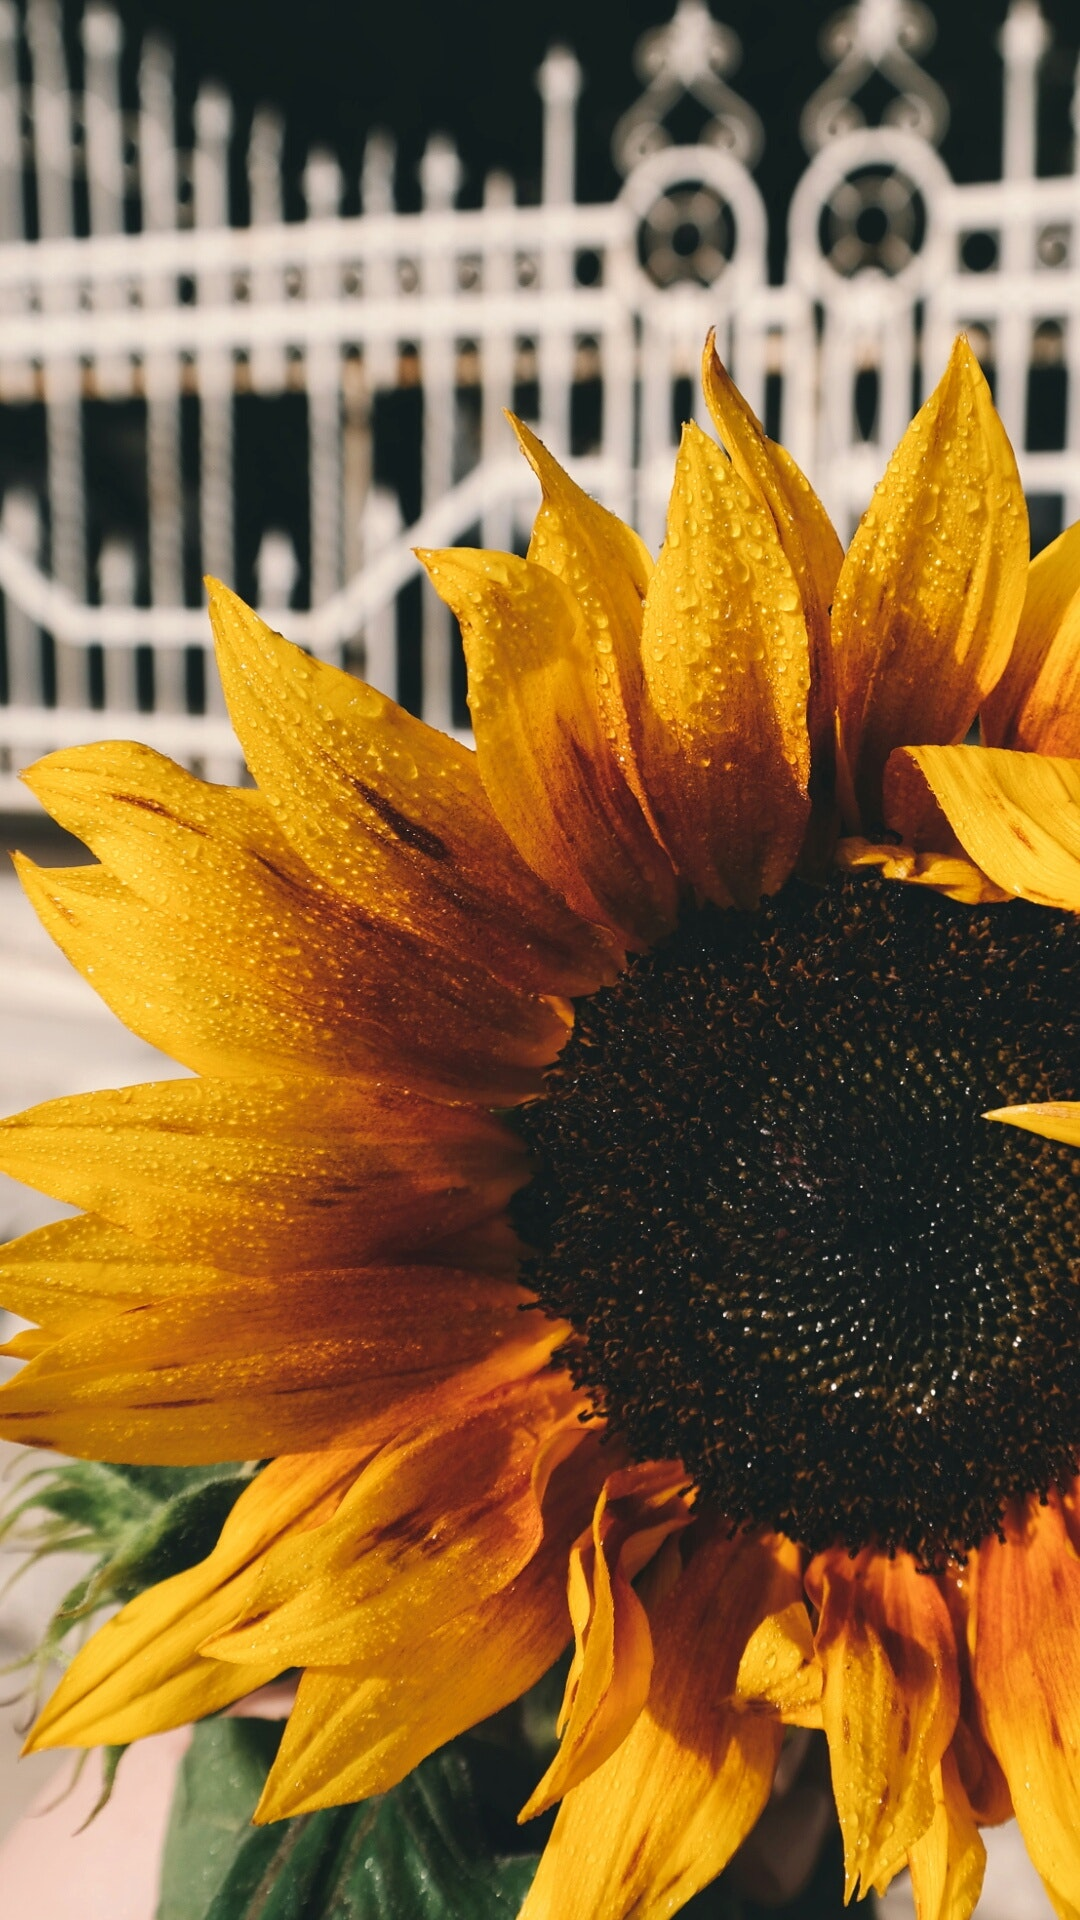 Sunflower Wallpapers for Free HD Image